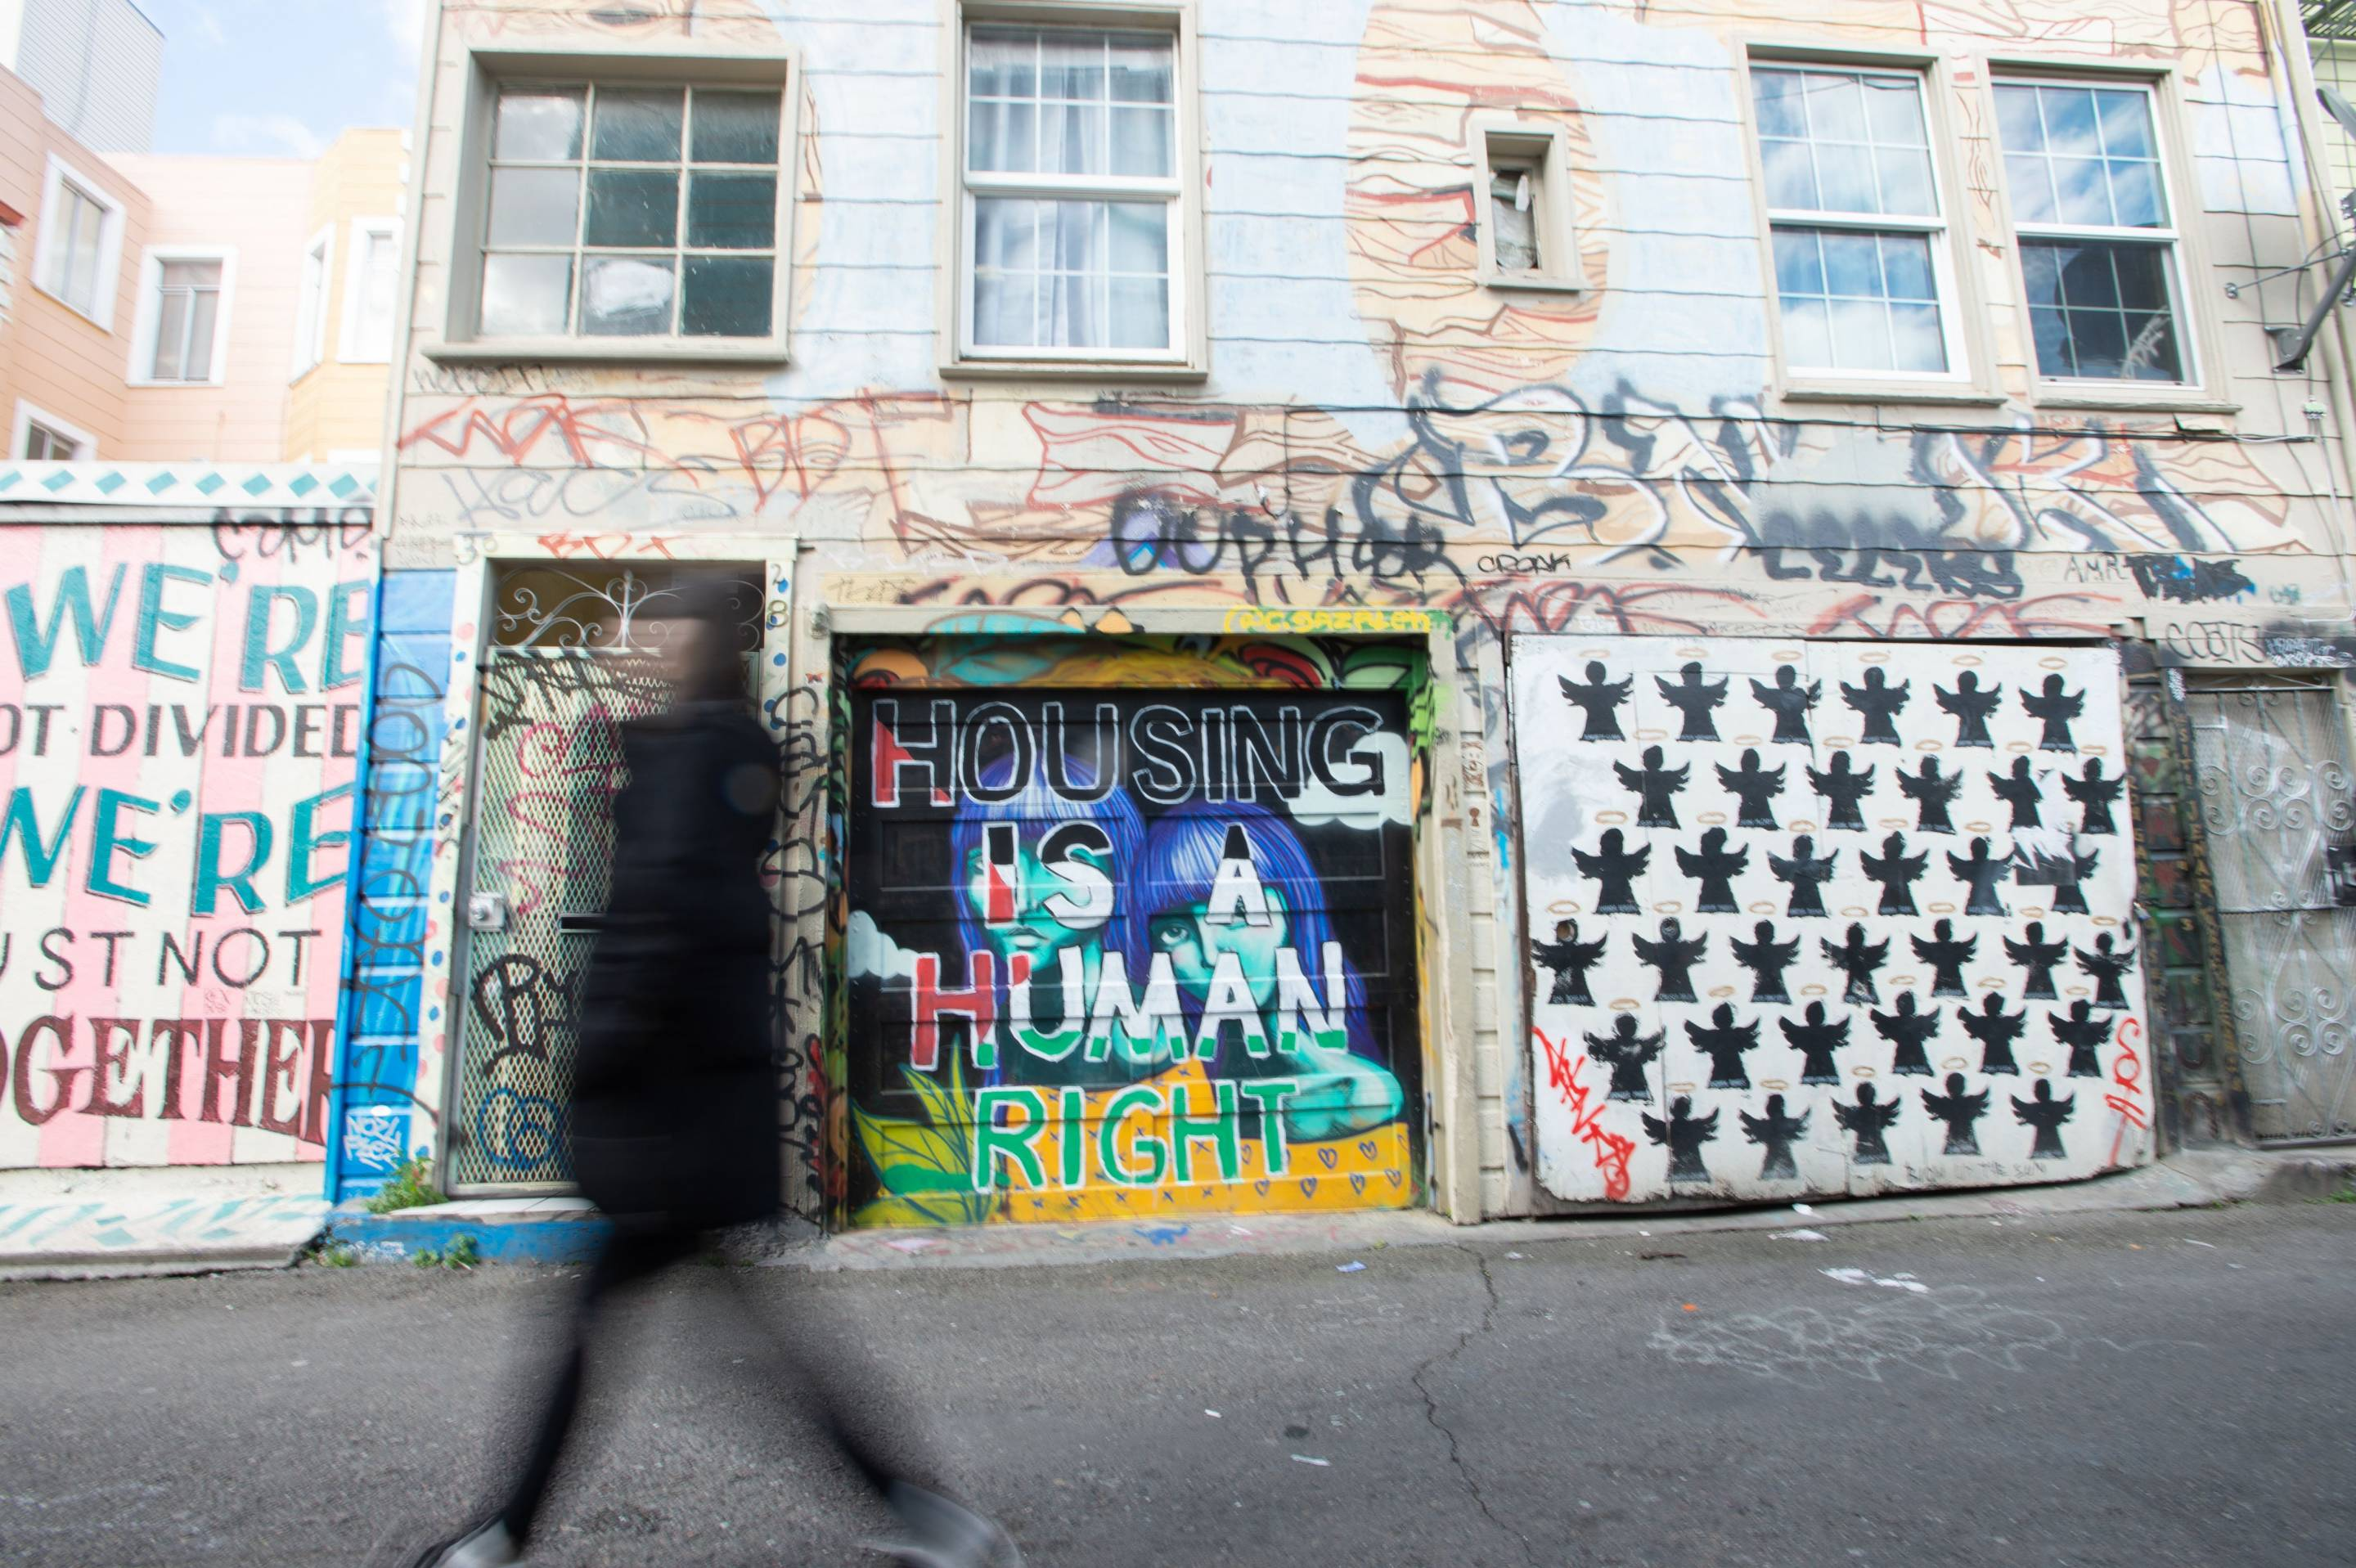 A woman walks by a housing-related mural in San Francisco on Feb. 6, 2019.